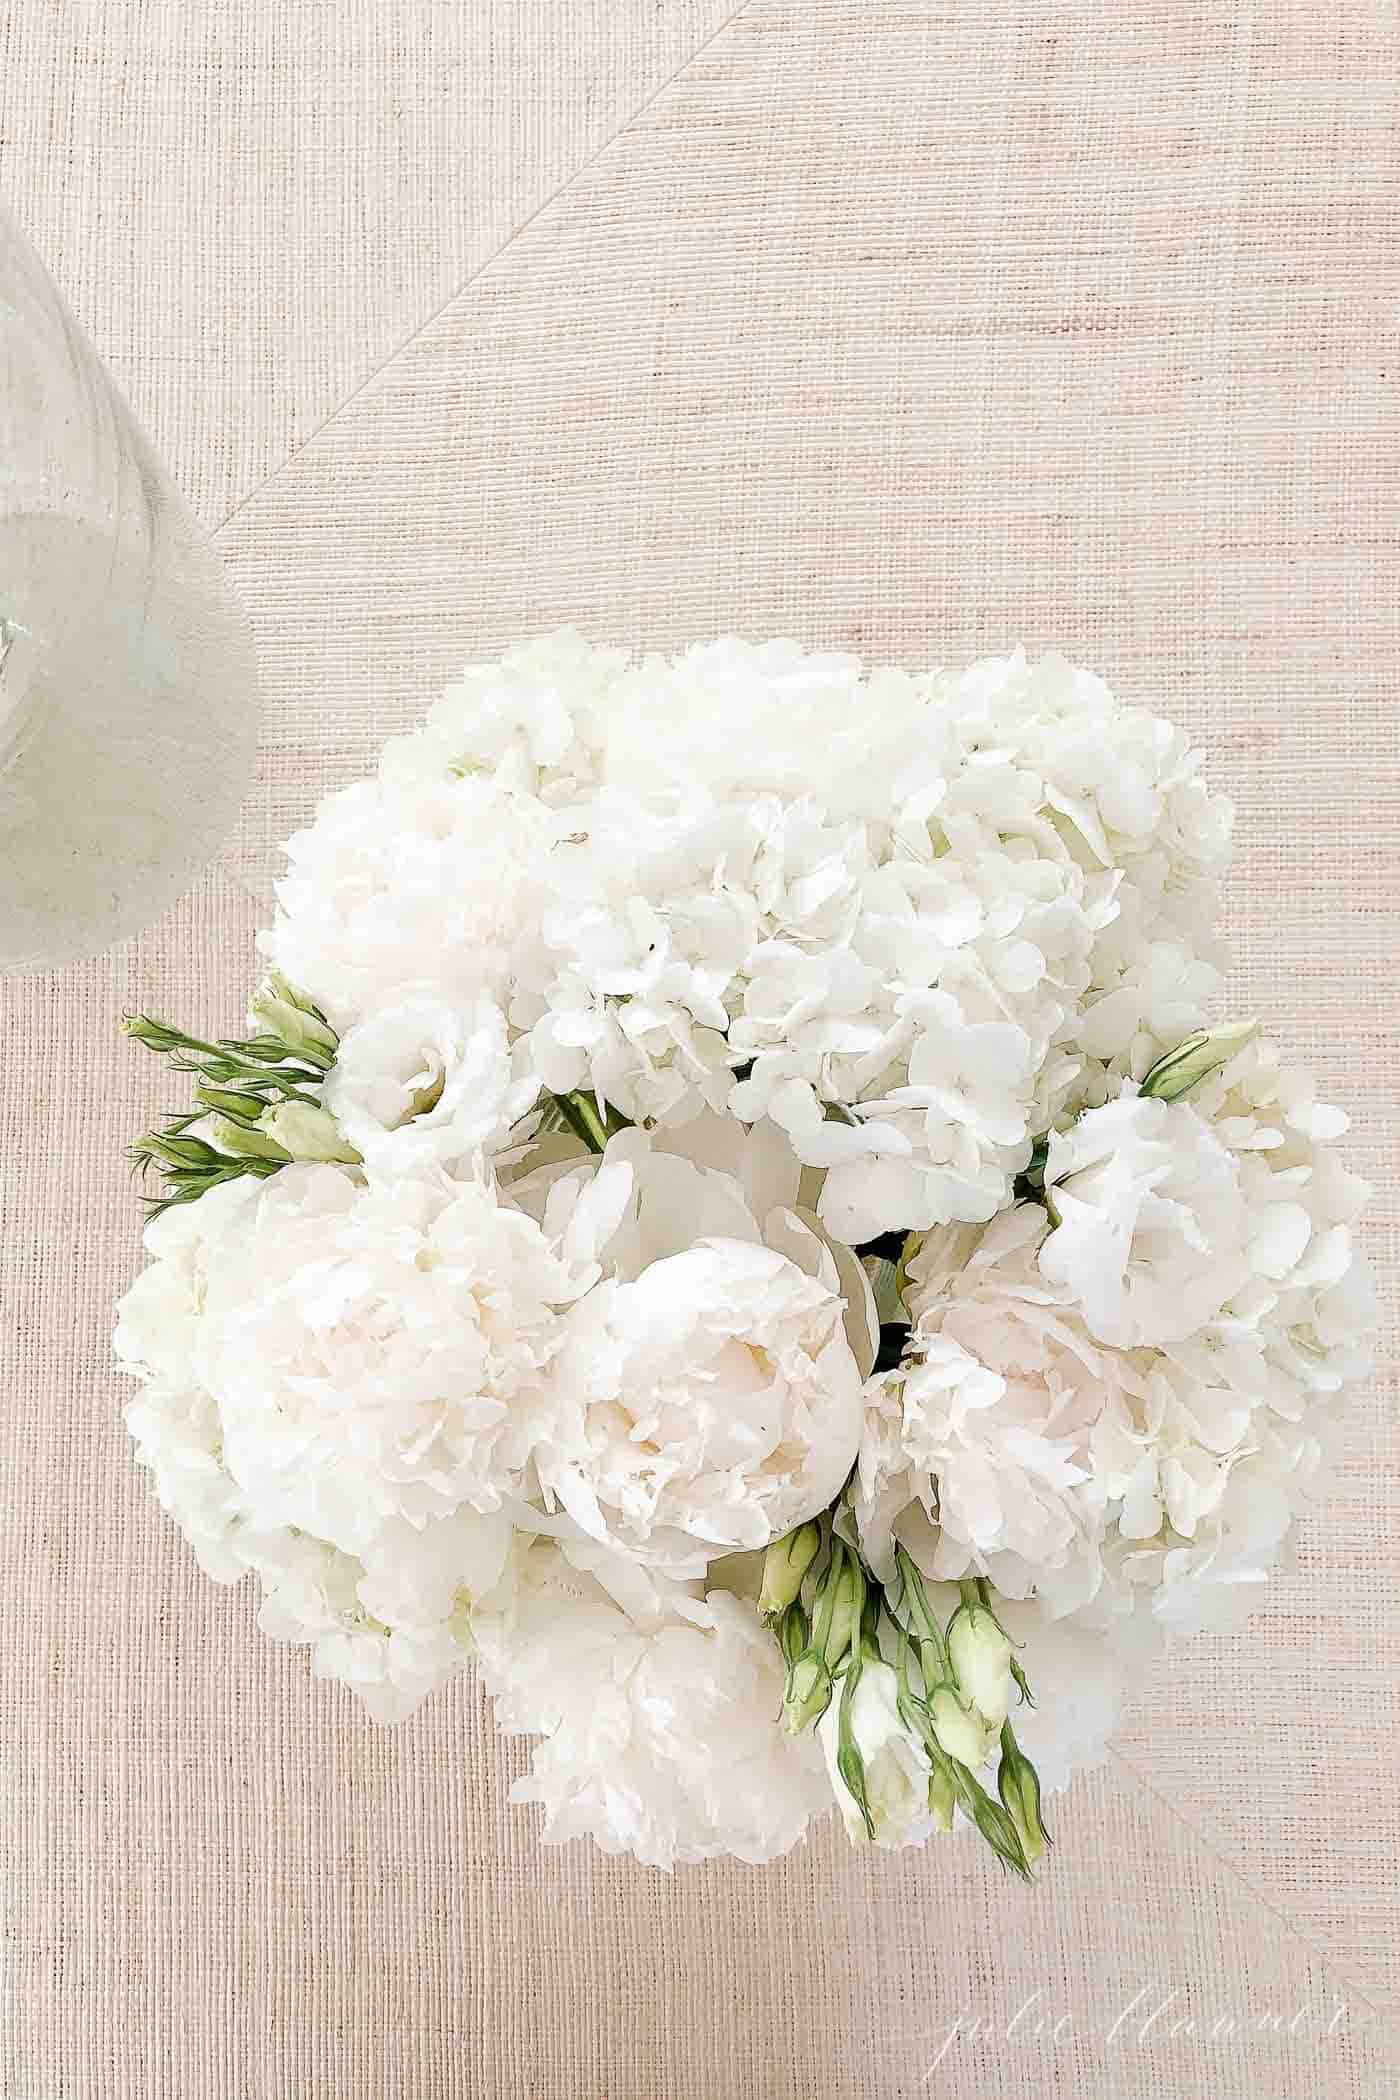 A fresh floral arrangement of white hydrangea and white peony flowers.